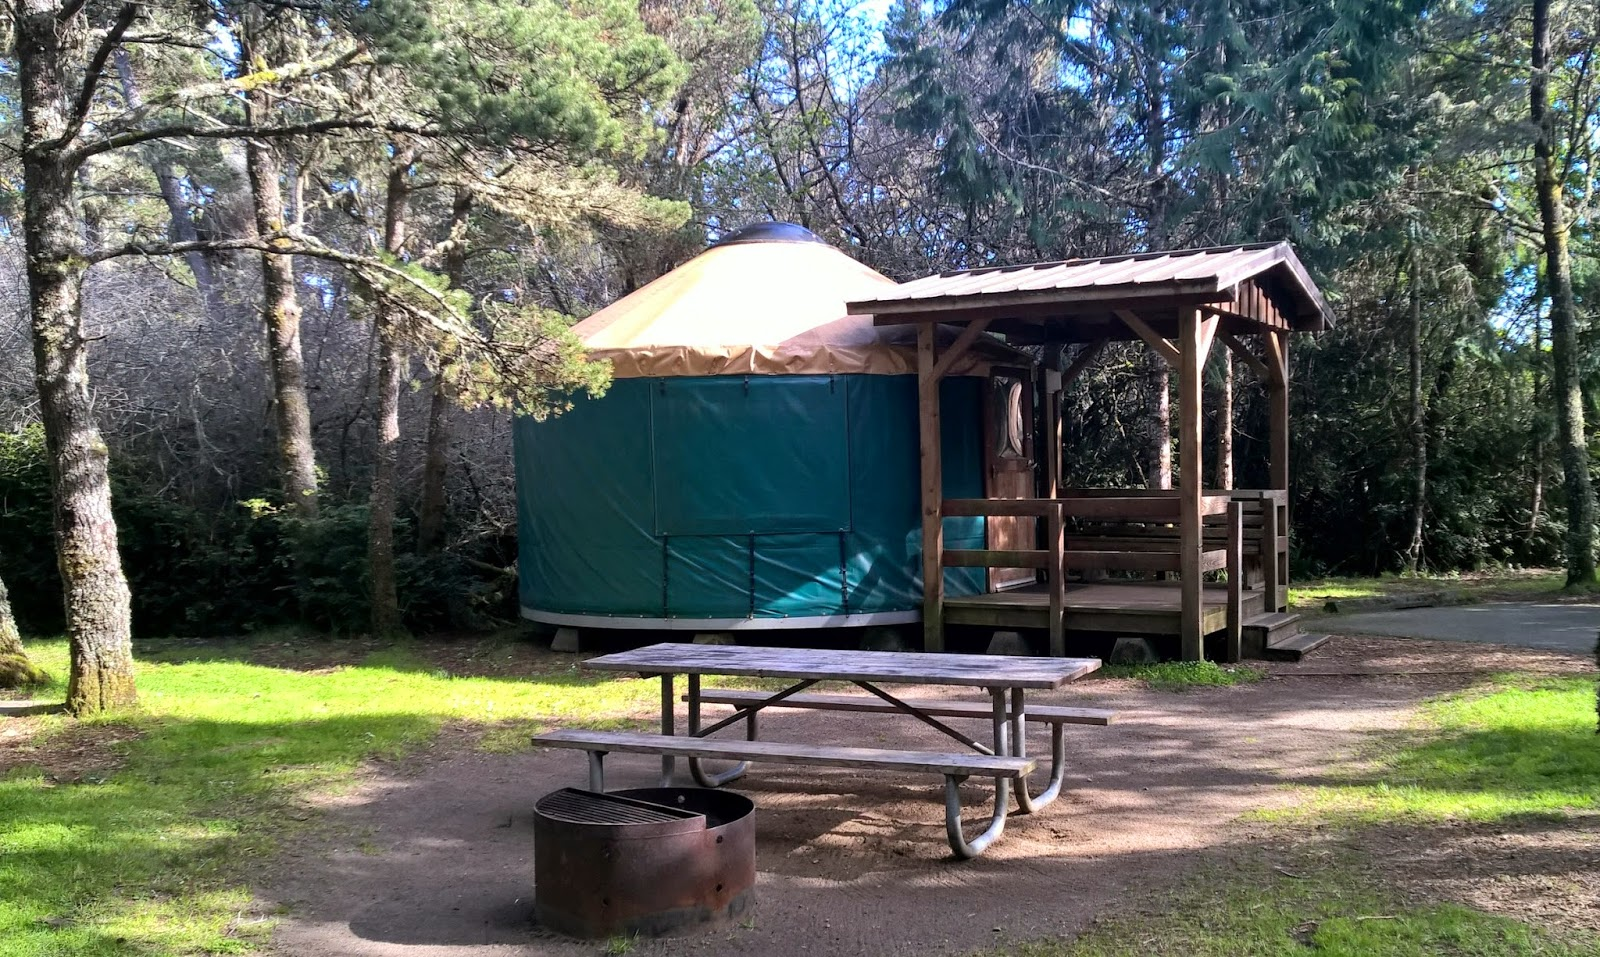 A Yurt The Covering Is Heavy Canv Plastic With Domed Skylight At Top Each Site Comes Porch Picnic Table And Fire Ring